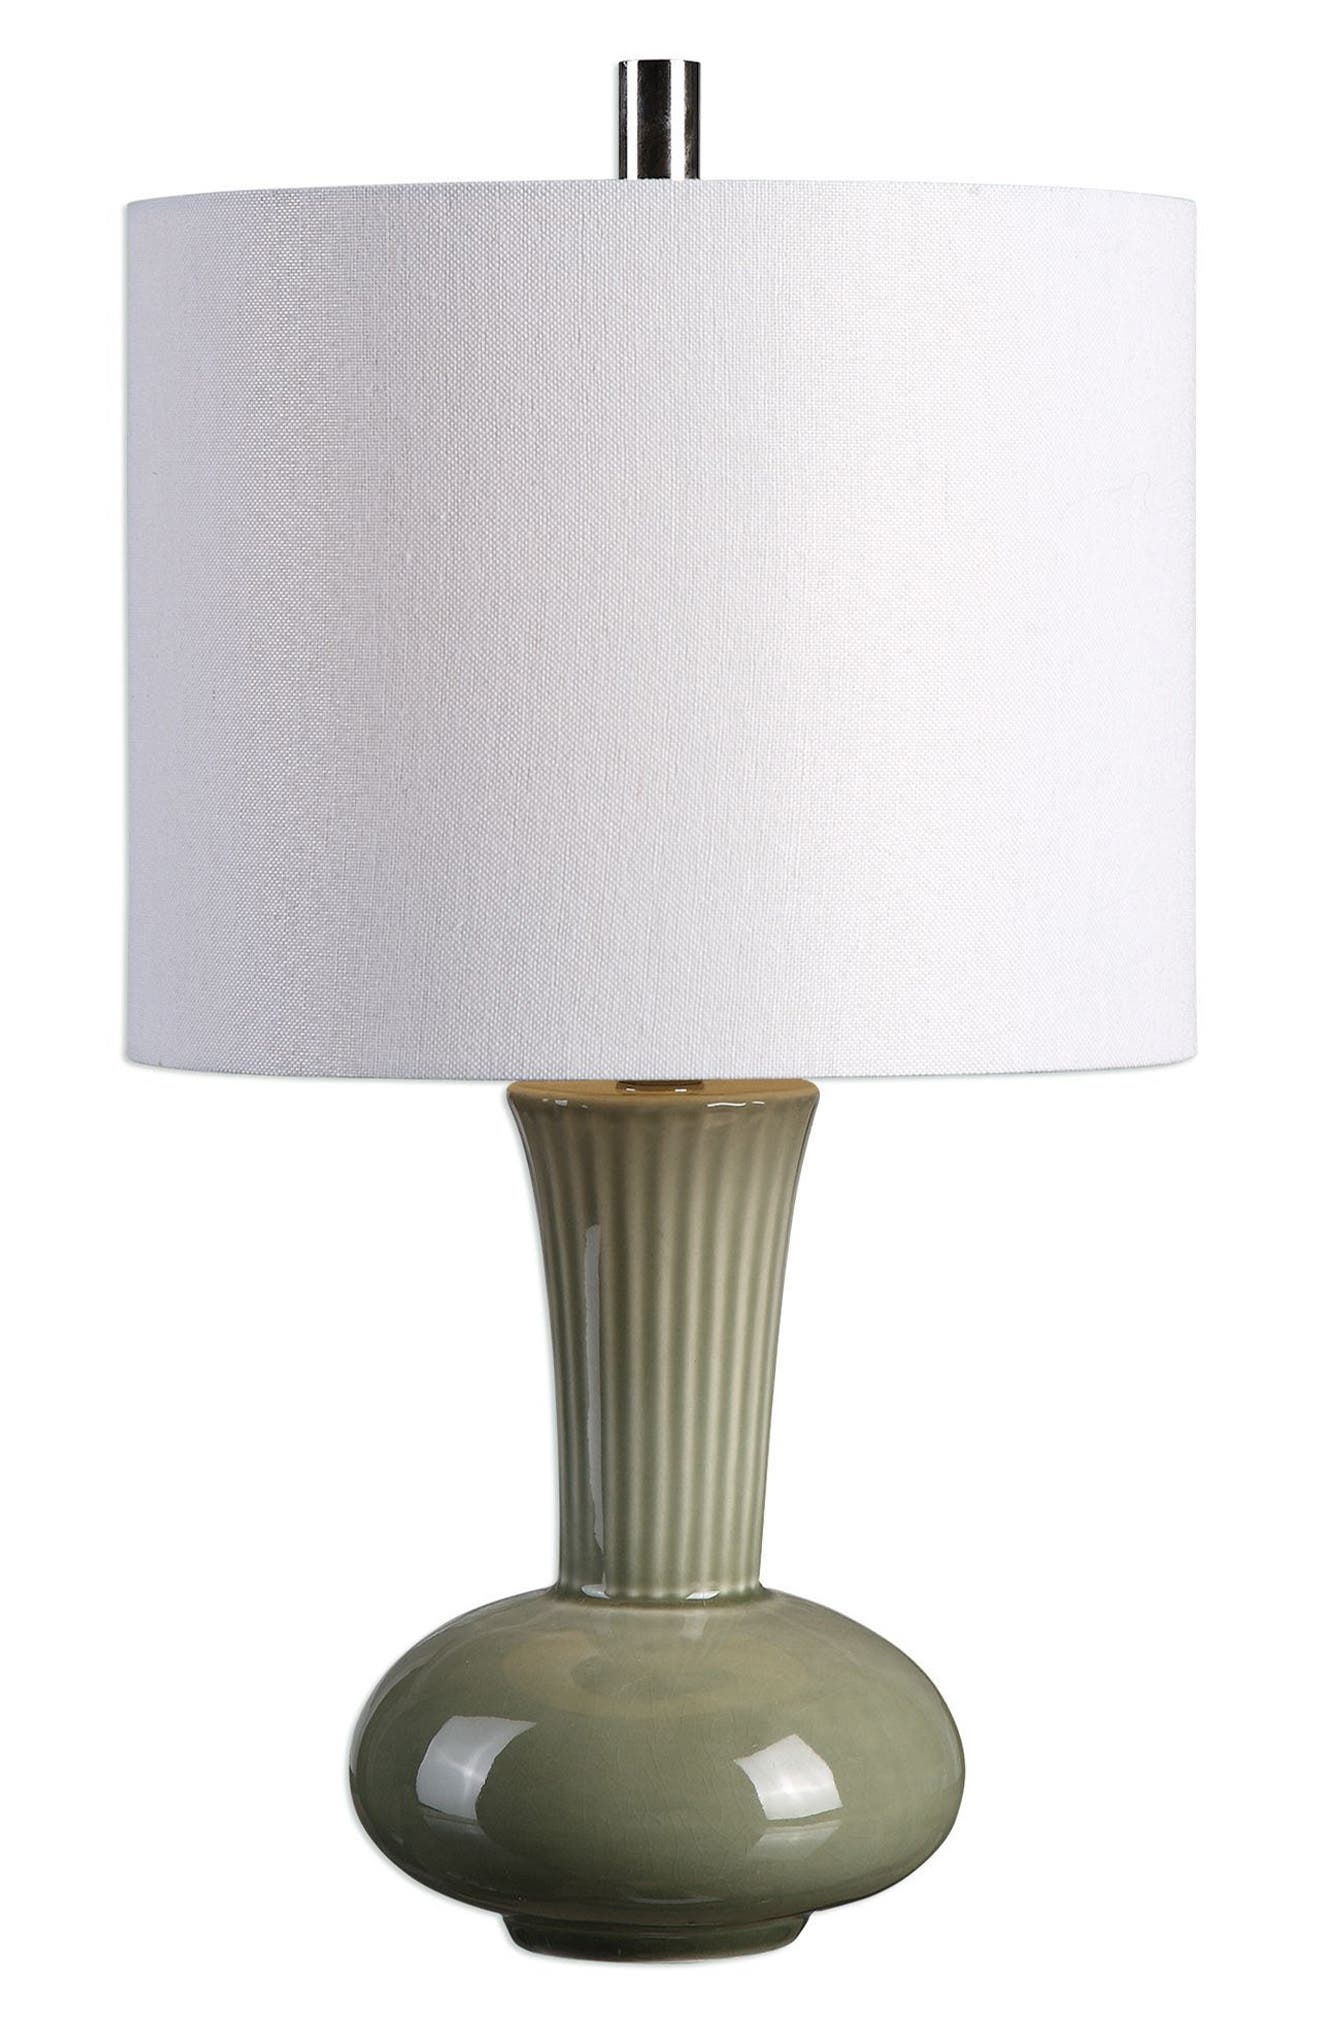 Main Image - Uttermost Luray Table Lamp